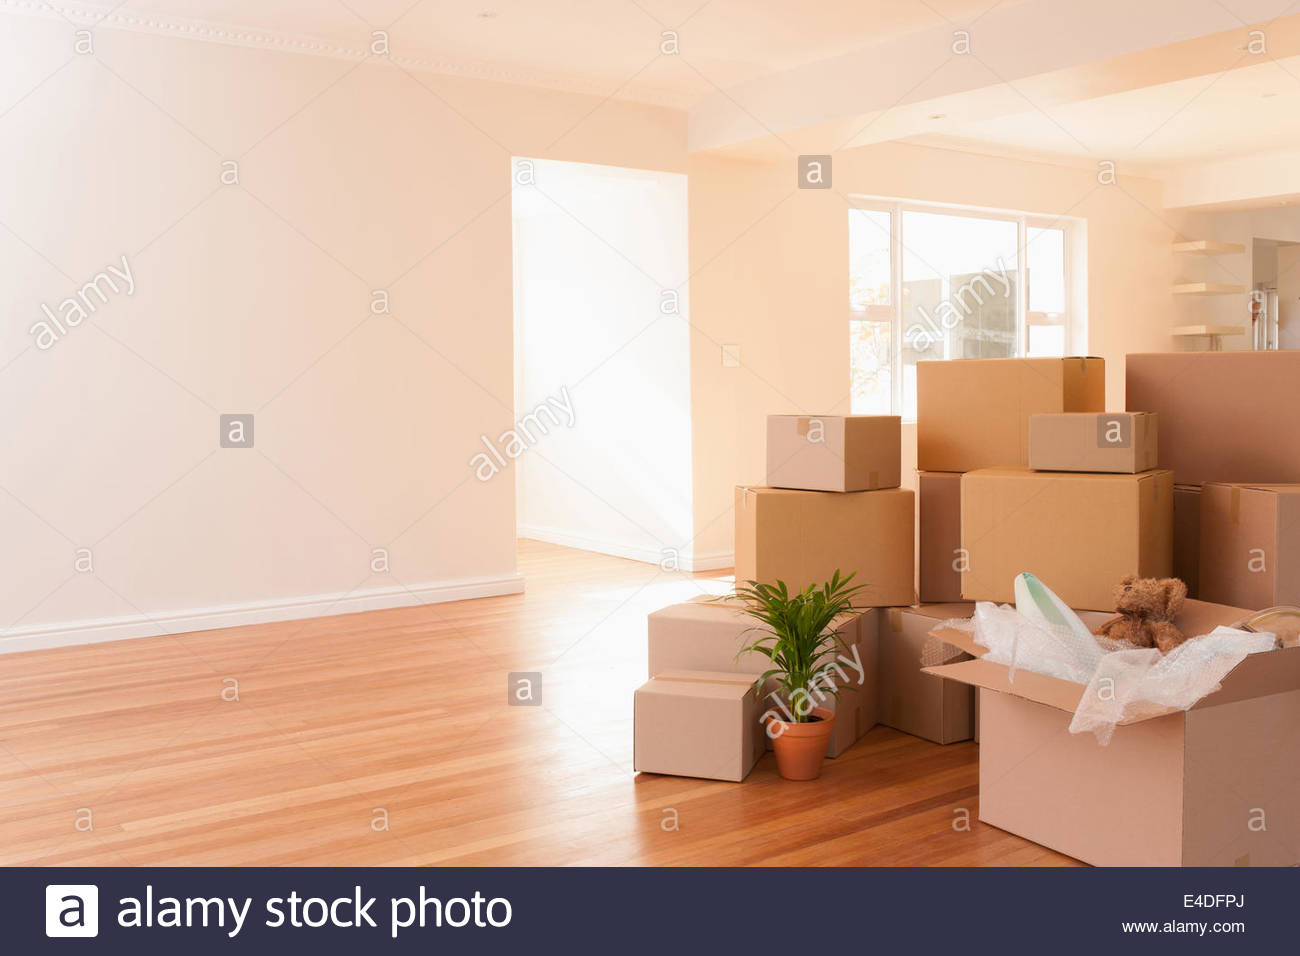 Boxes stacked on wooden floor of new house - Stock Image